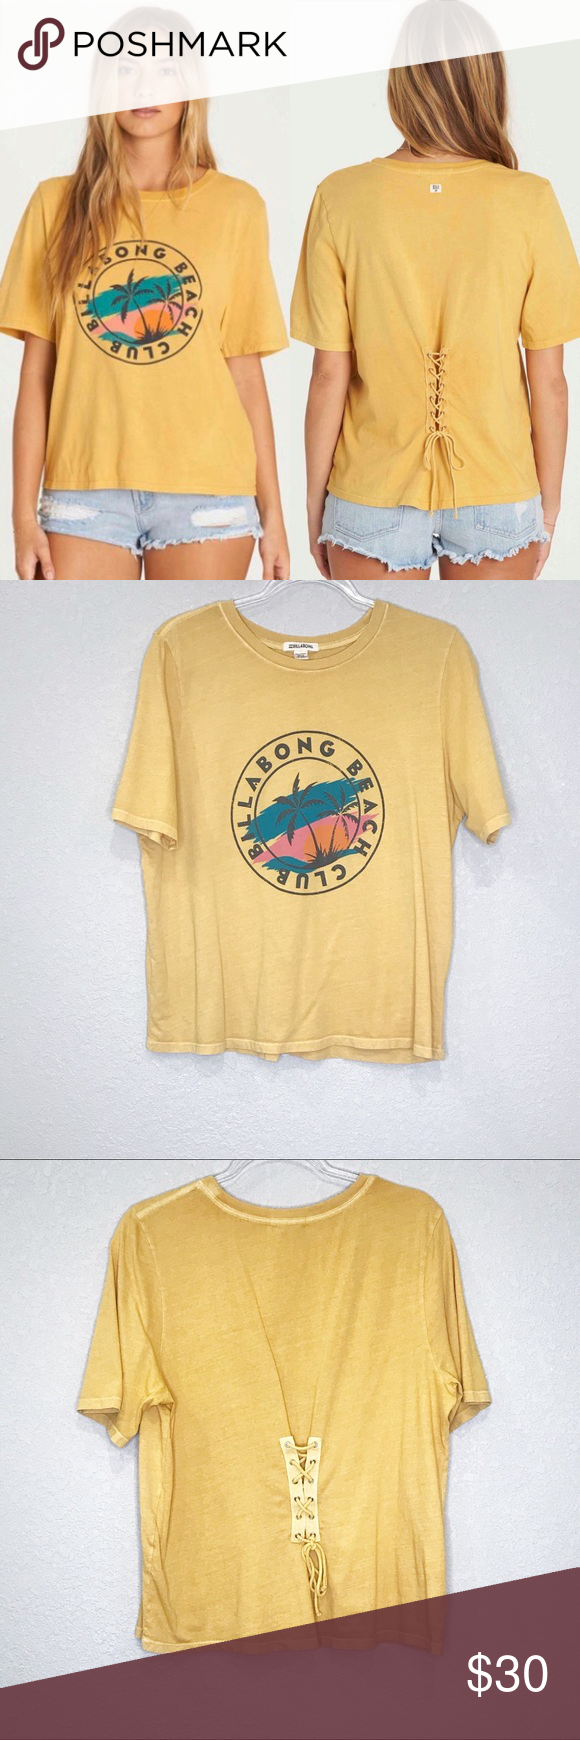 Billabong Take Back Lace Up Vintage Tee Gold Dust Vintage Tees Graphic Tee Shirts Tees